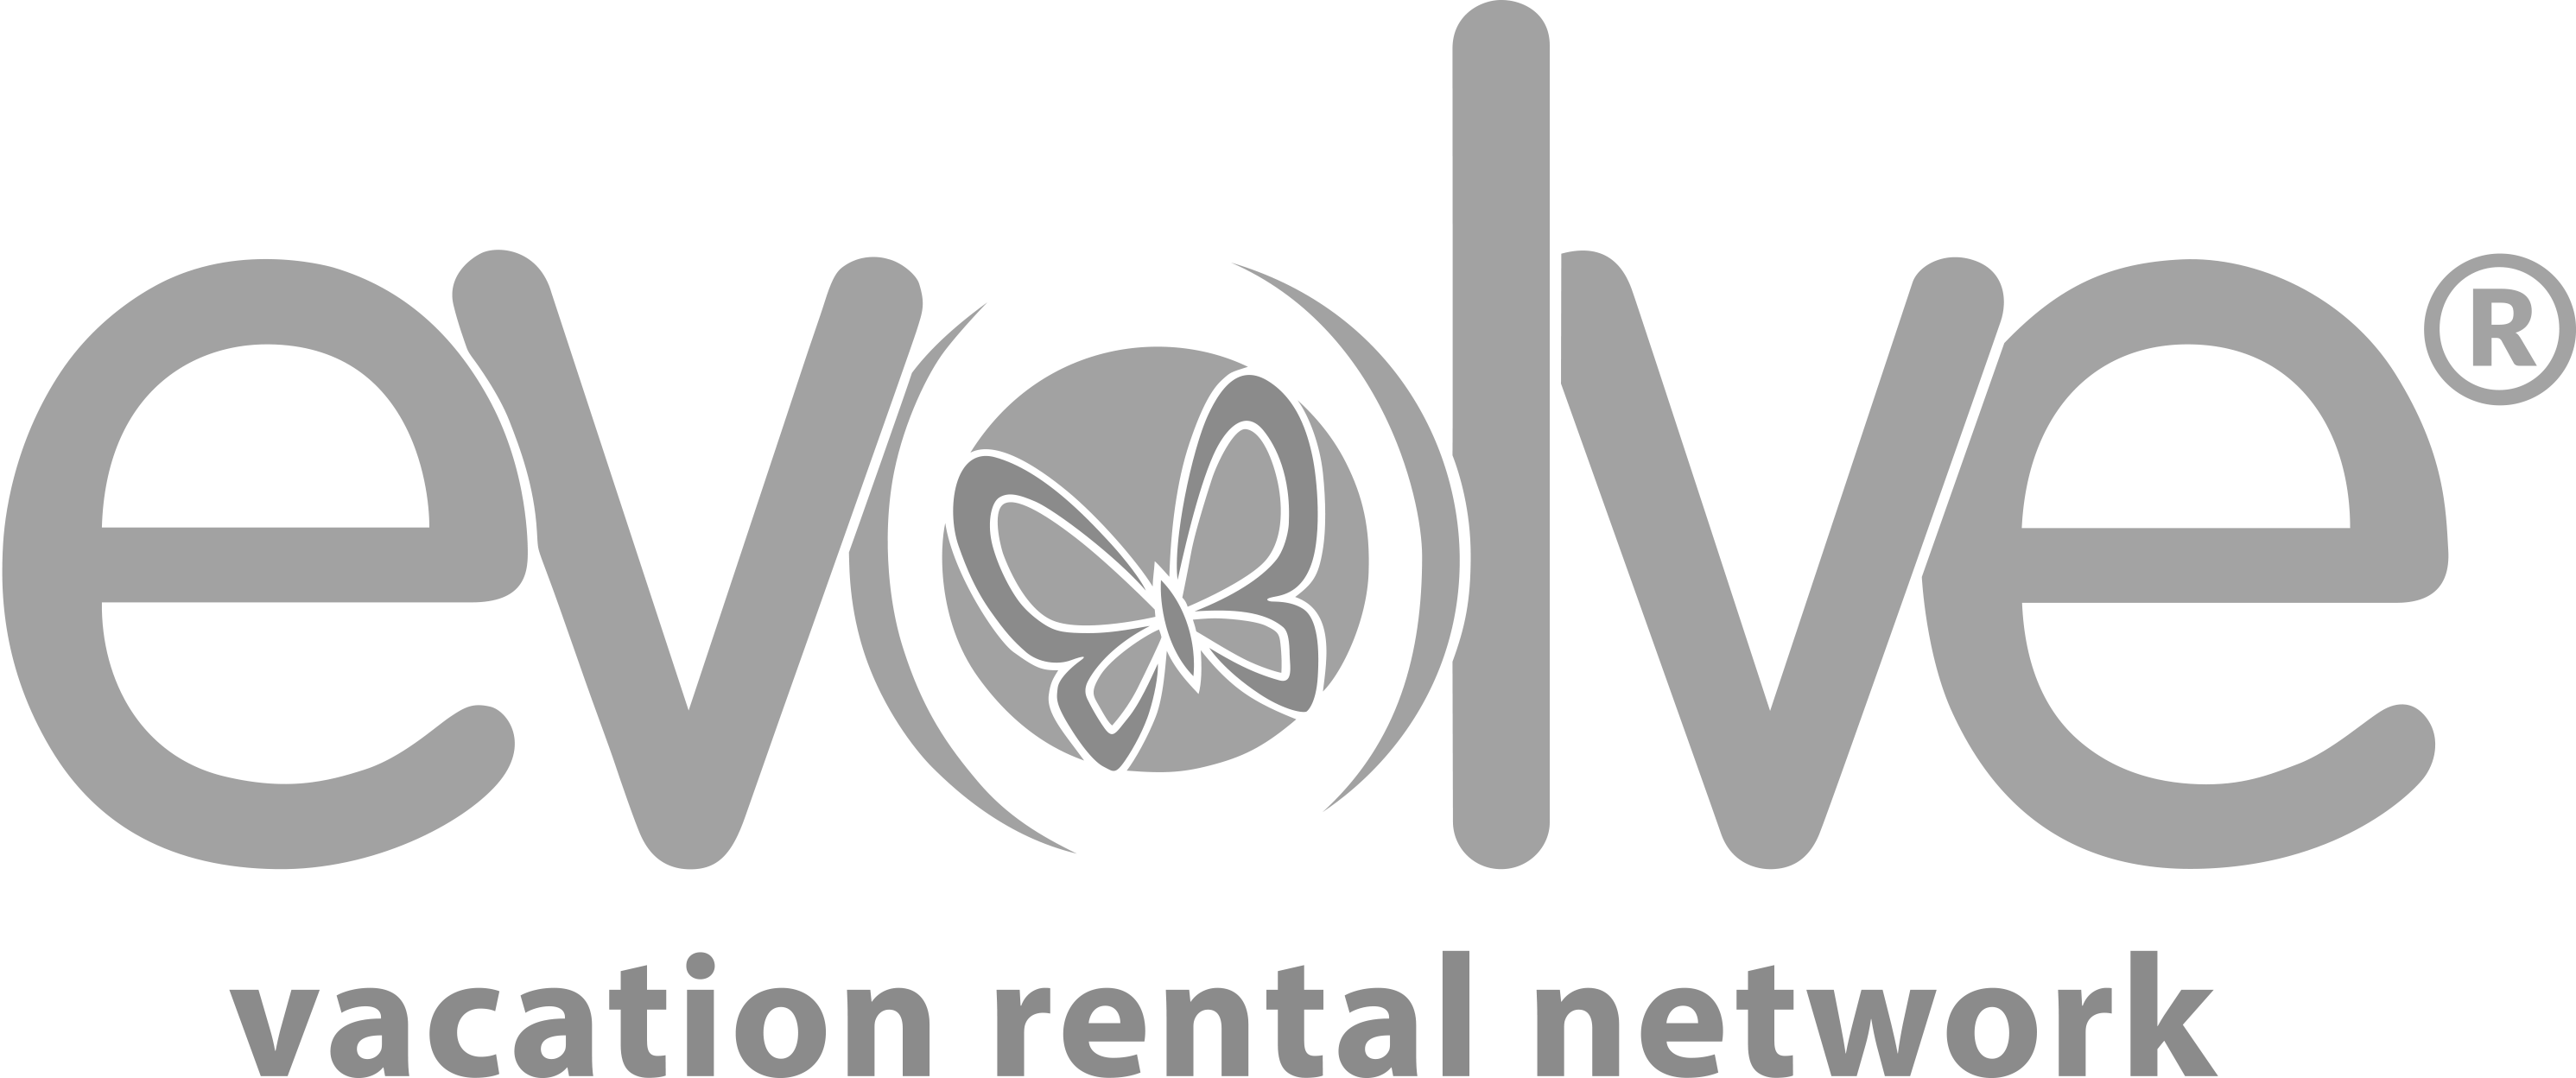 Evolve Vacations